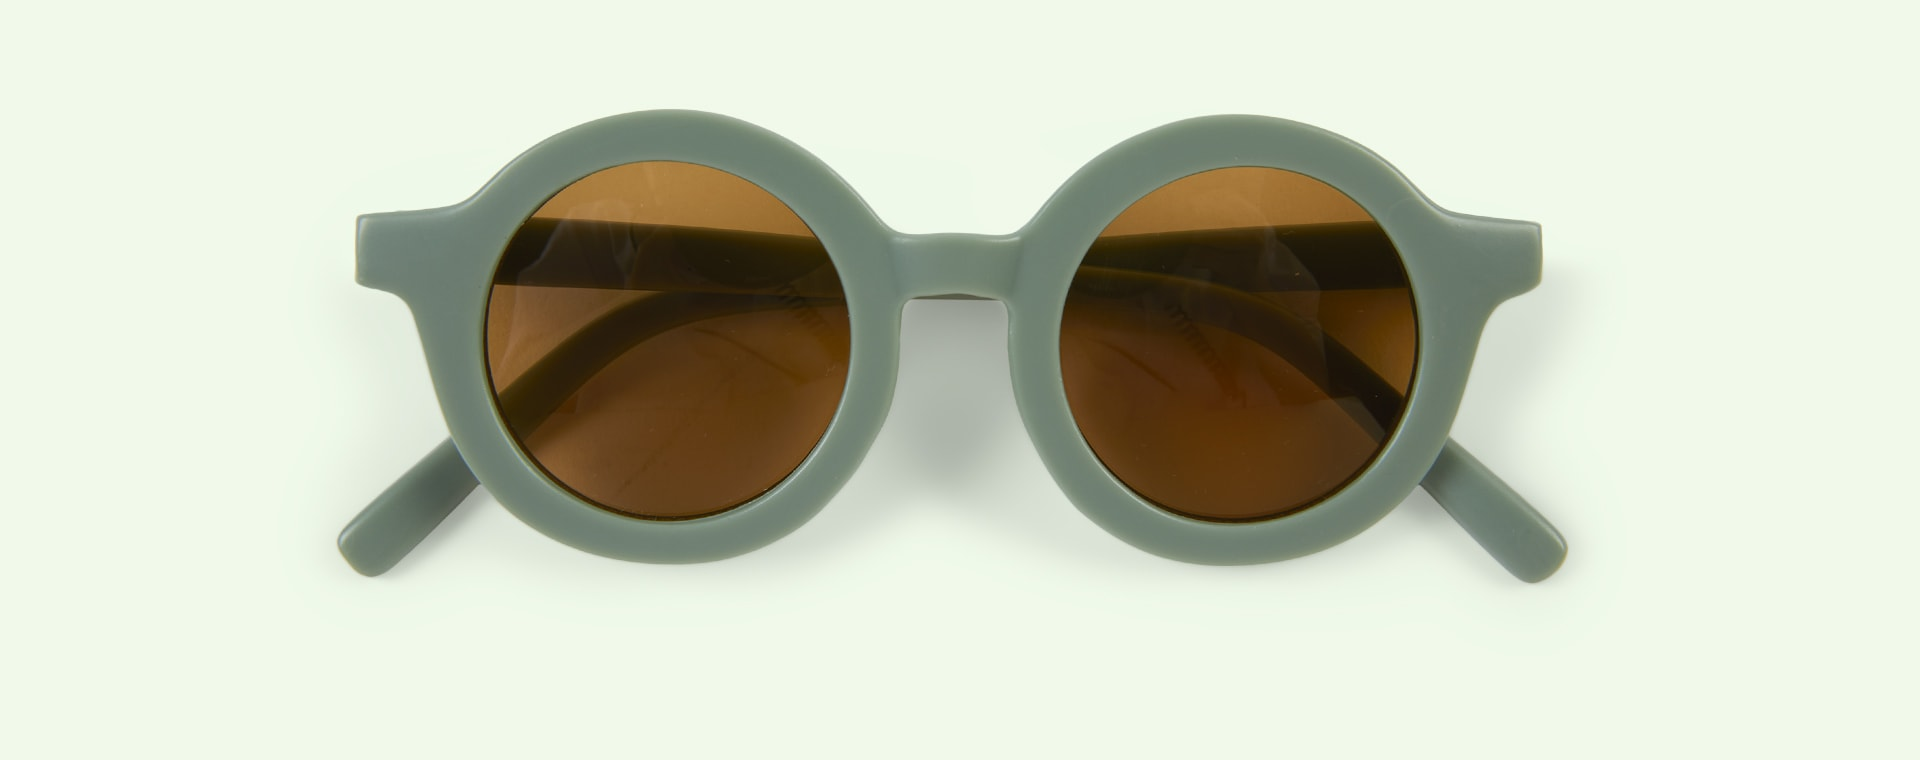 Fern Grech & Co Sustainable Sunglasses